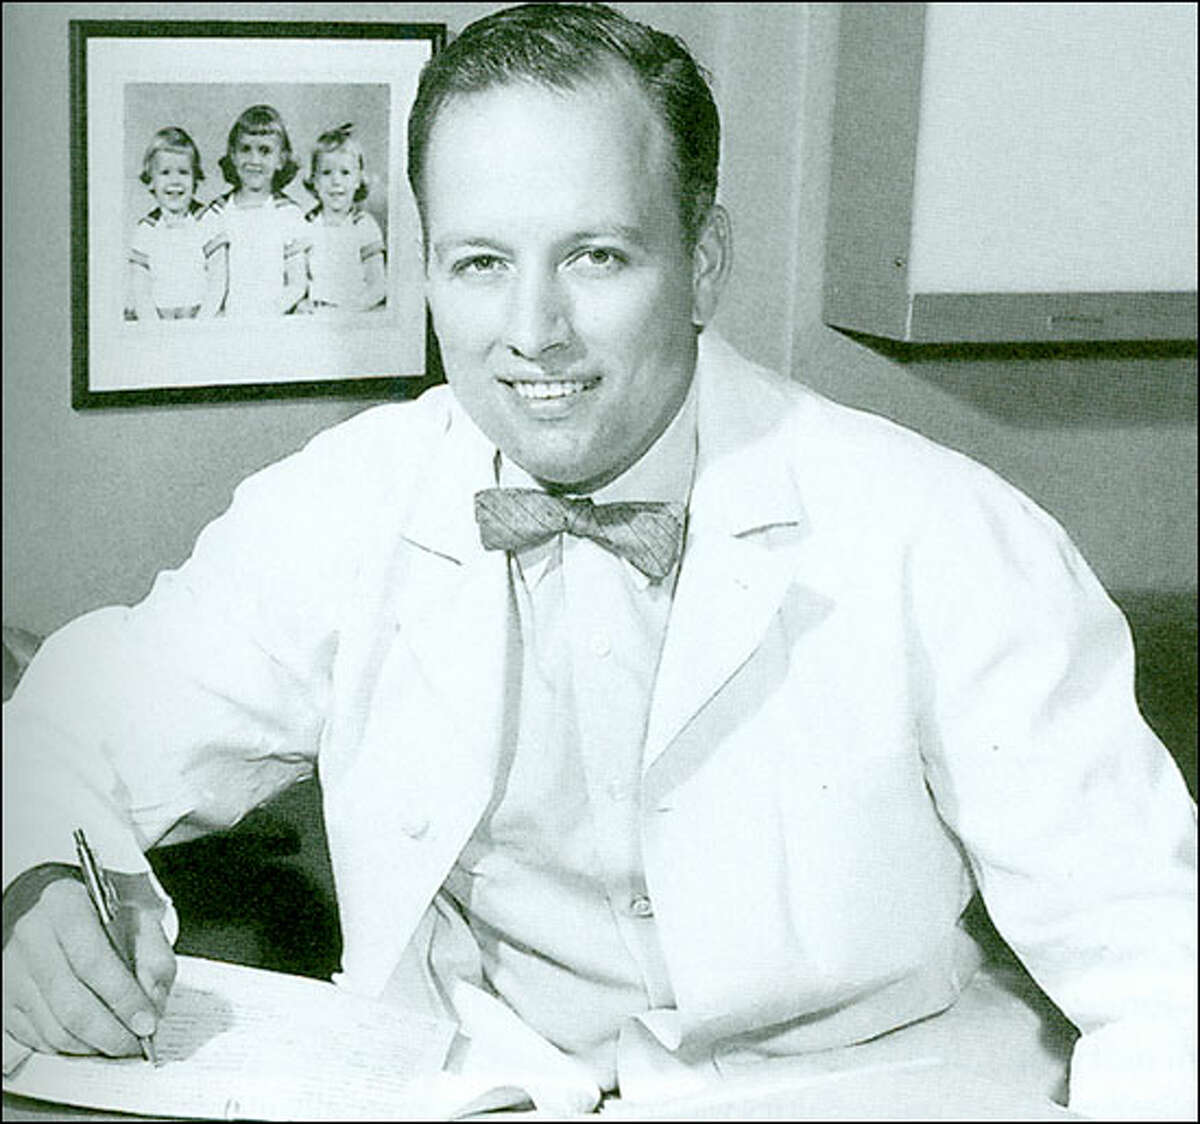 1920: Born in Houston on Aug. 26 to Ralph Clarkson Cooley and Mary Fraley Cooley. Ralph was a prominent Houston dentist and a grandfather, Daniel Denton Cooley, was the founder of the Houston Heights neighborhood. Dr. Denton A. Cooley circa 1955.